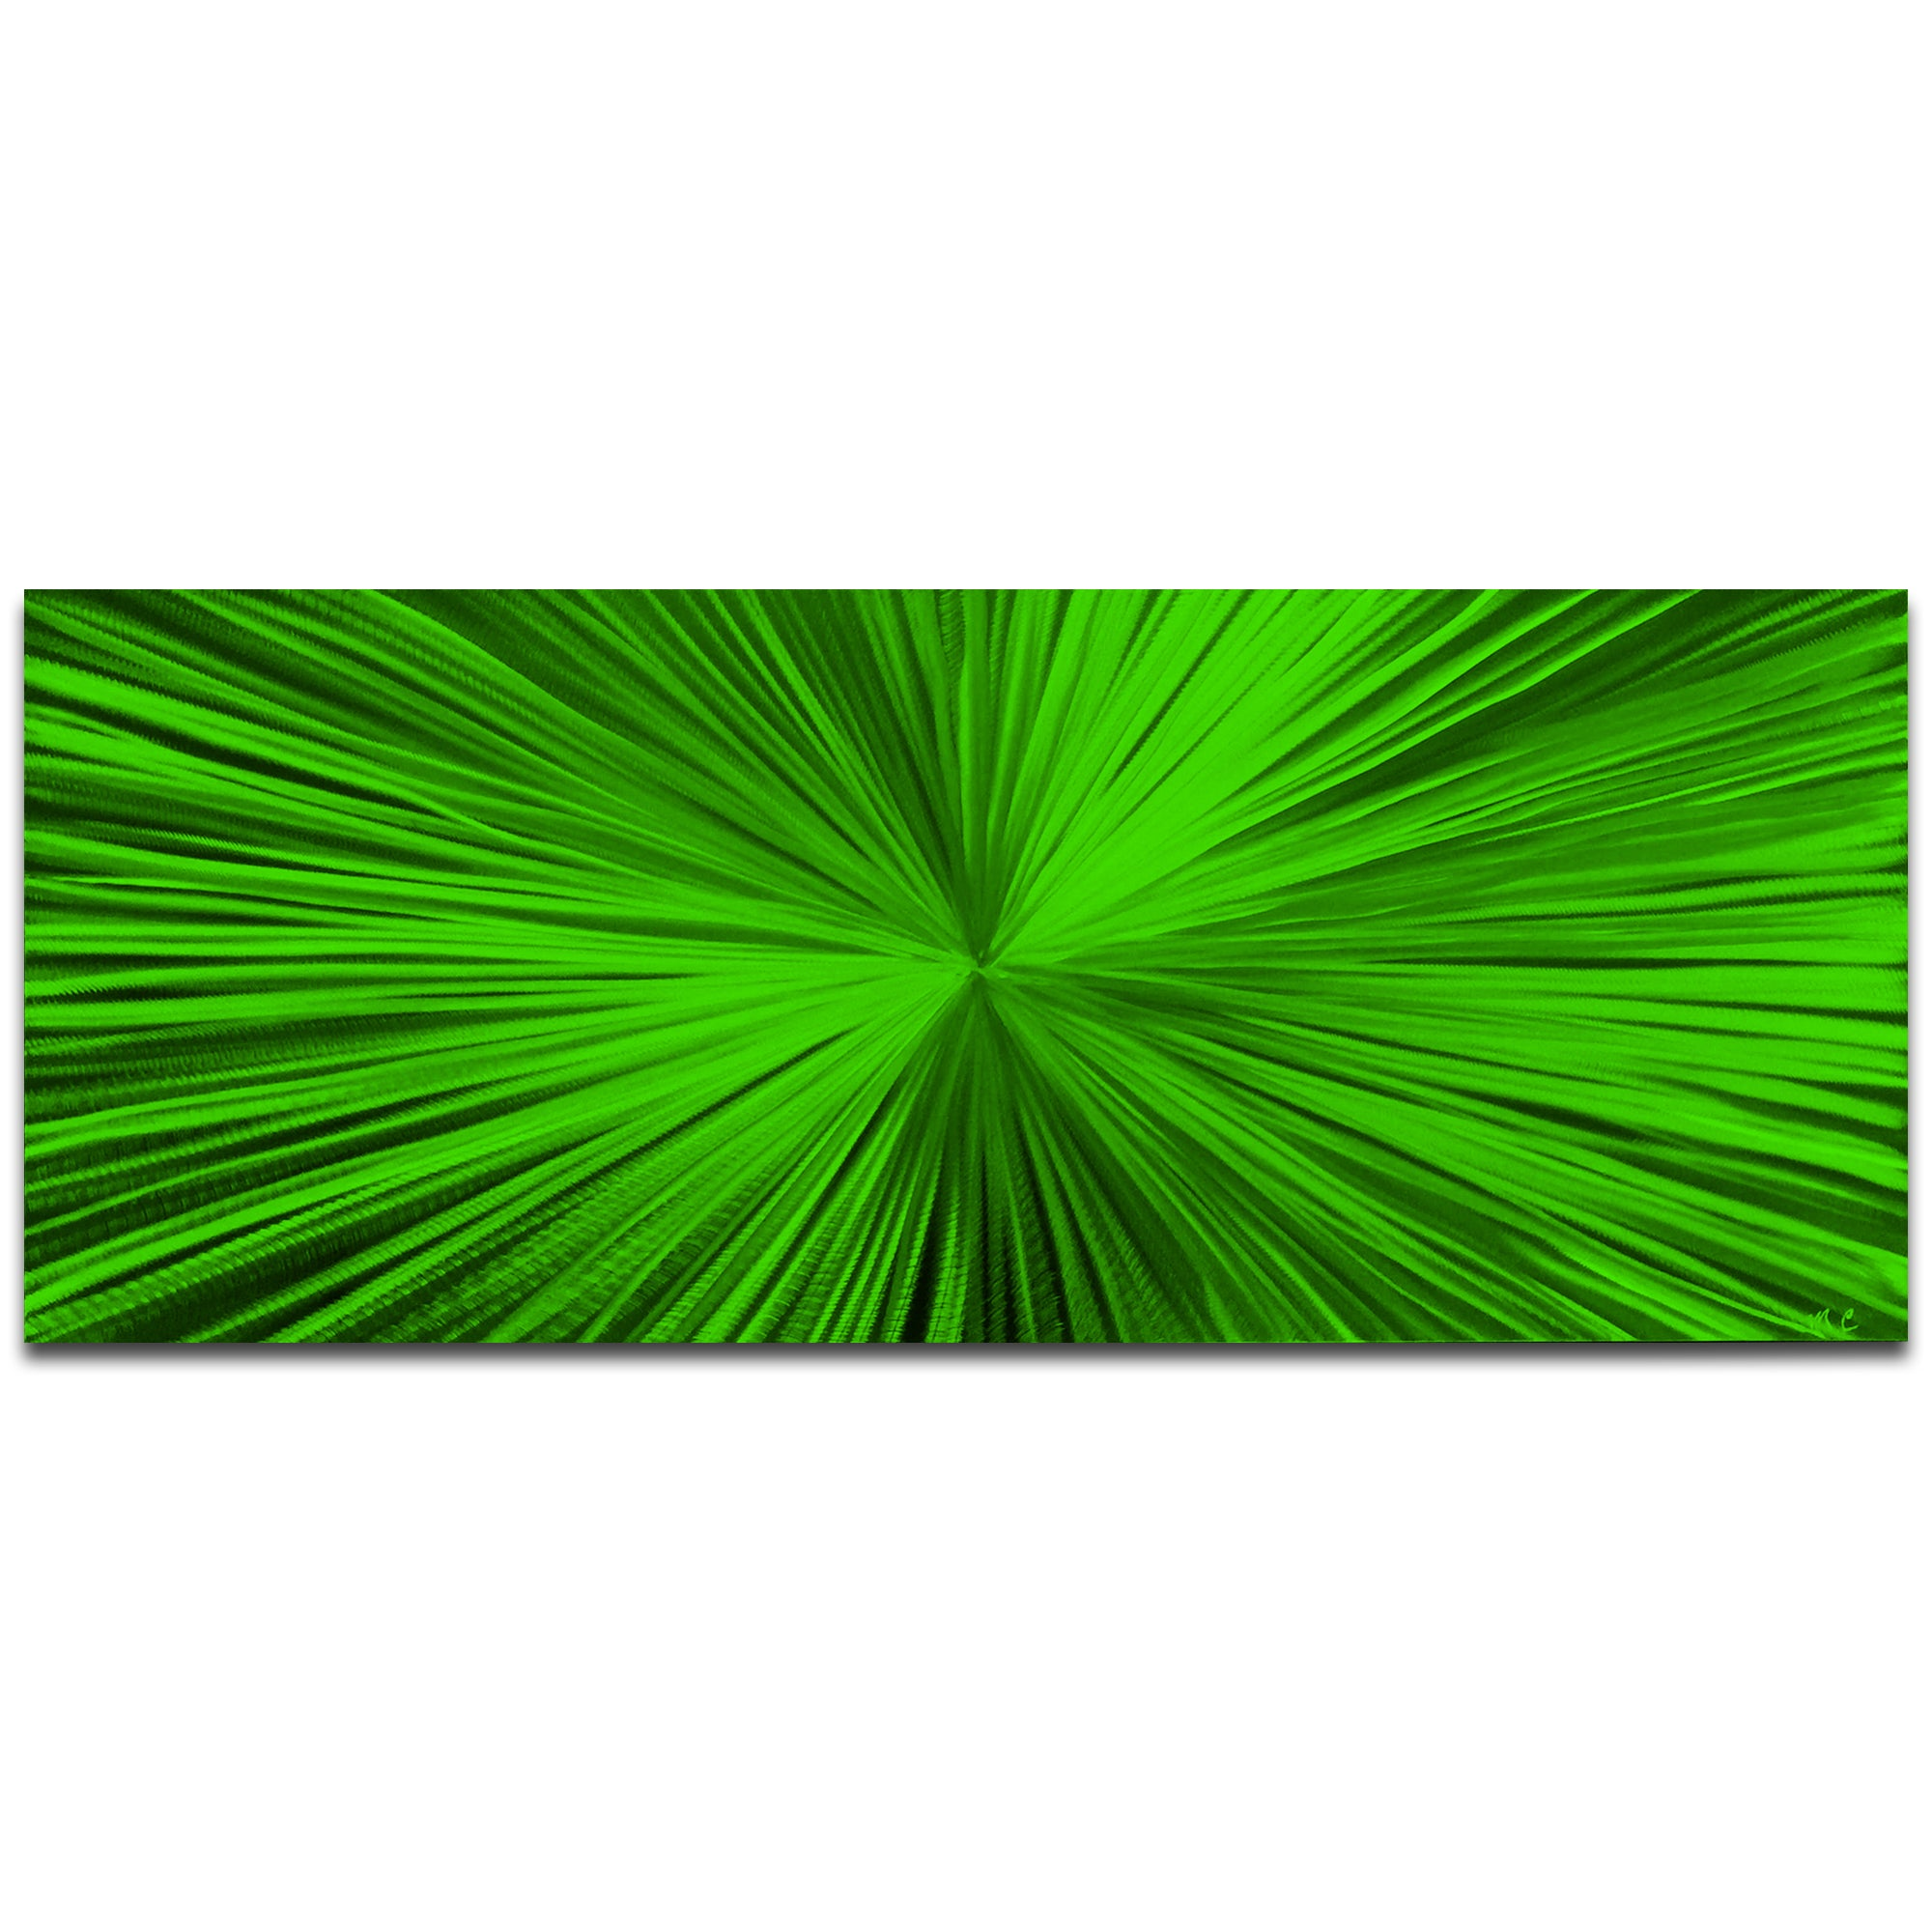 Starburst Green by Helena Martin - Original Abstract Art on Ground and Painted Metal